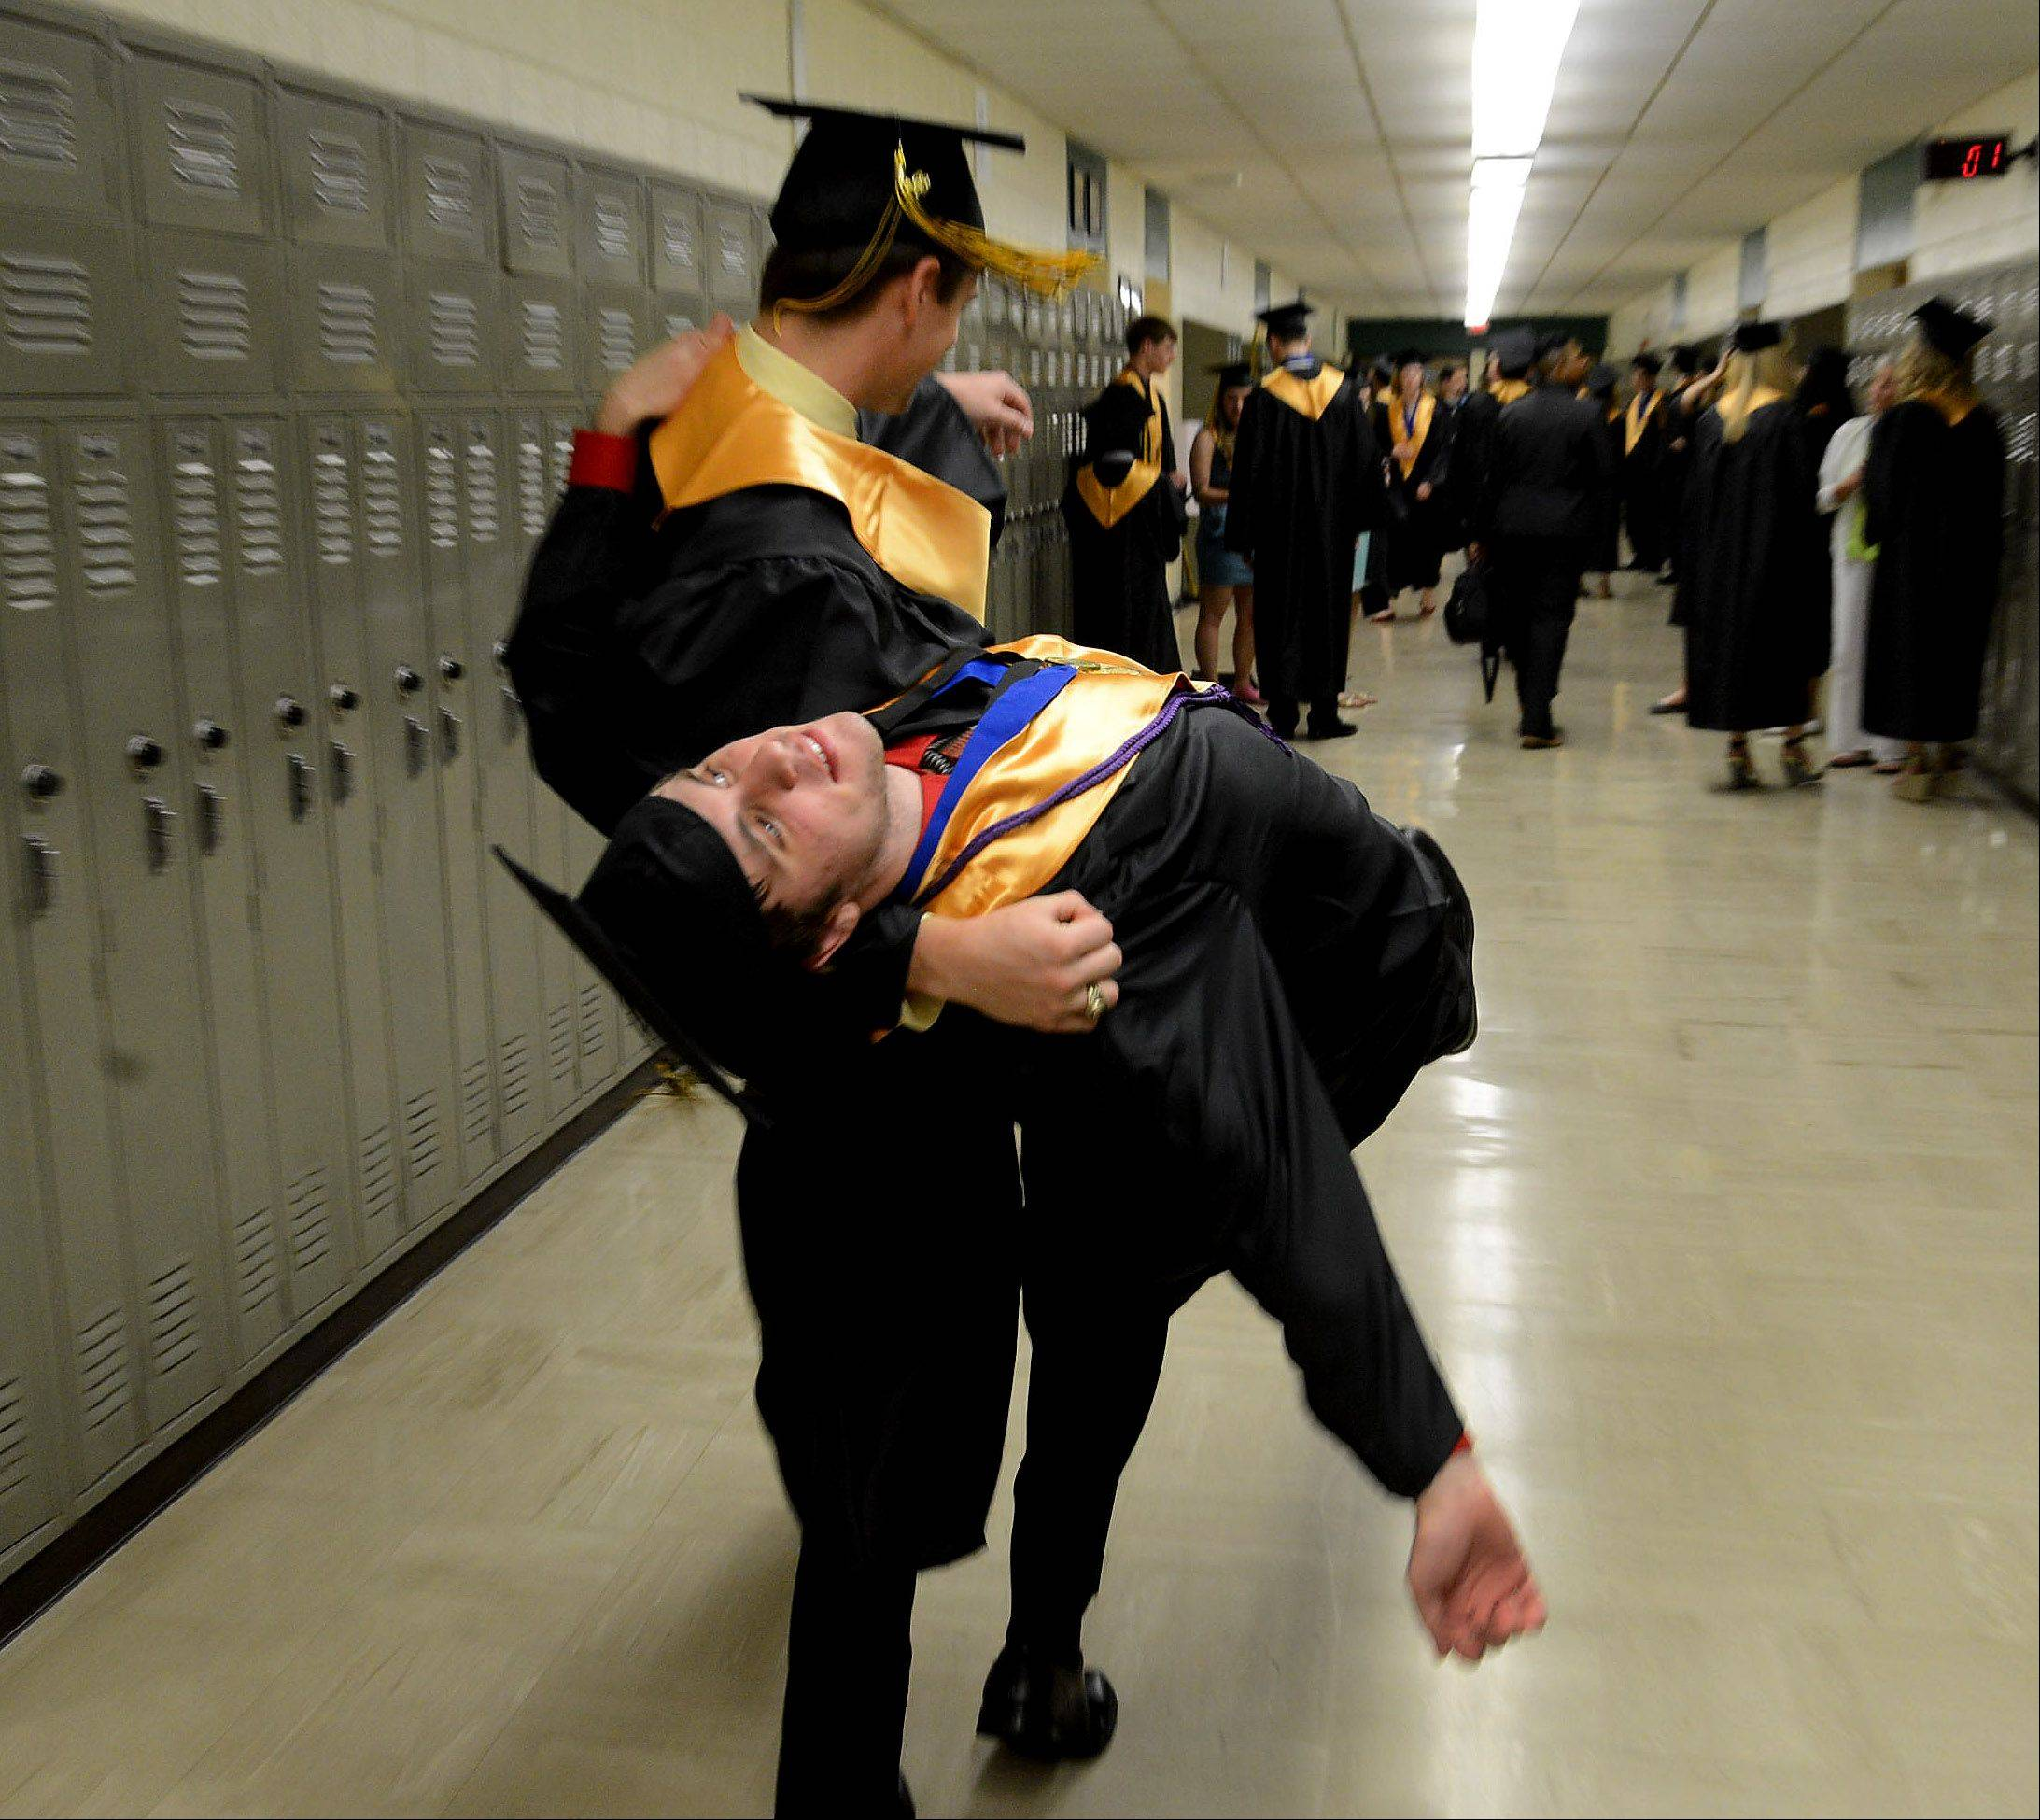 David Lawler, left, and Tom Sheridan feign a fainting spell while waiting for the Glenbard North High School graduation to begin.